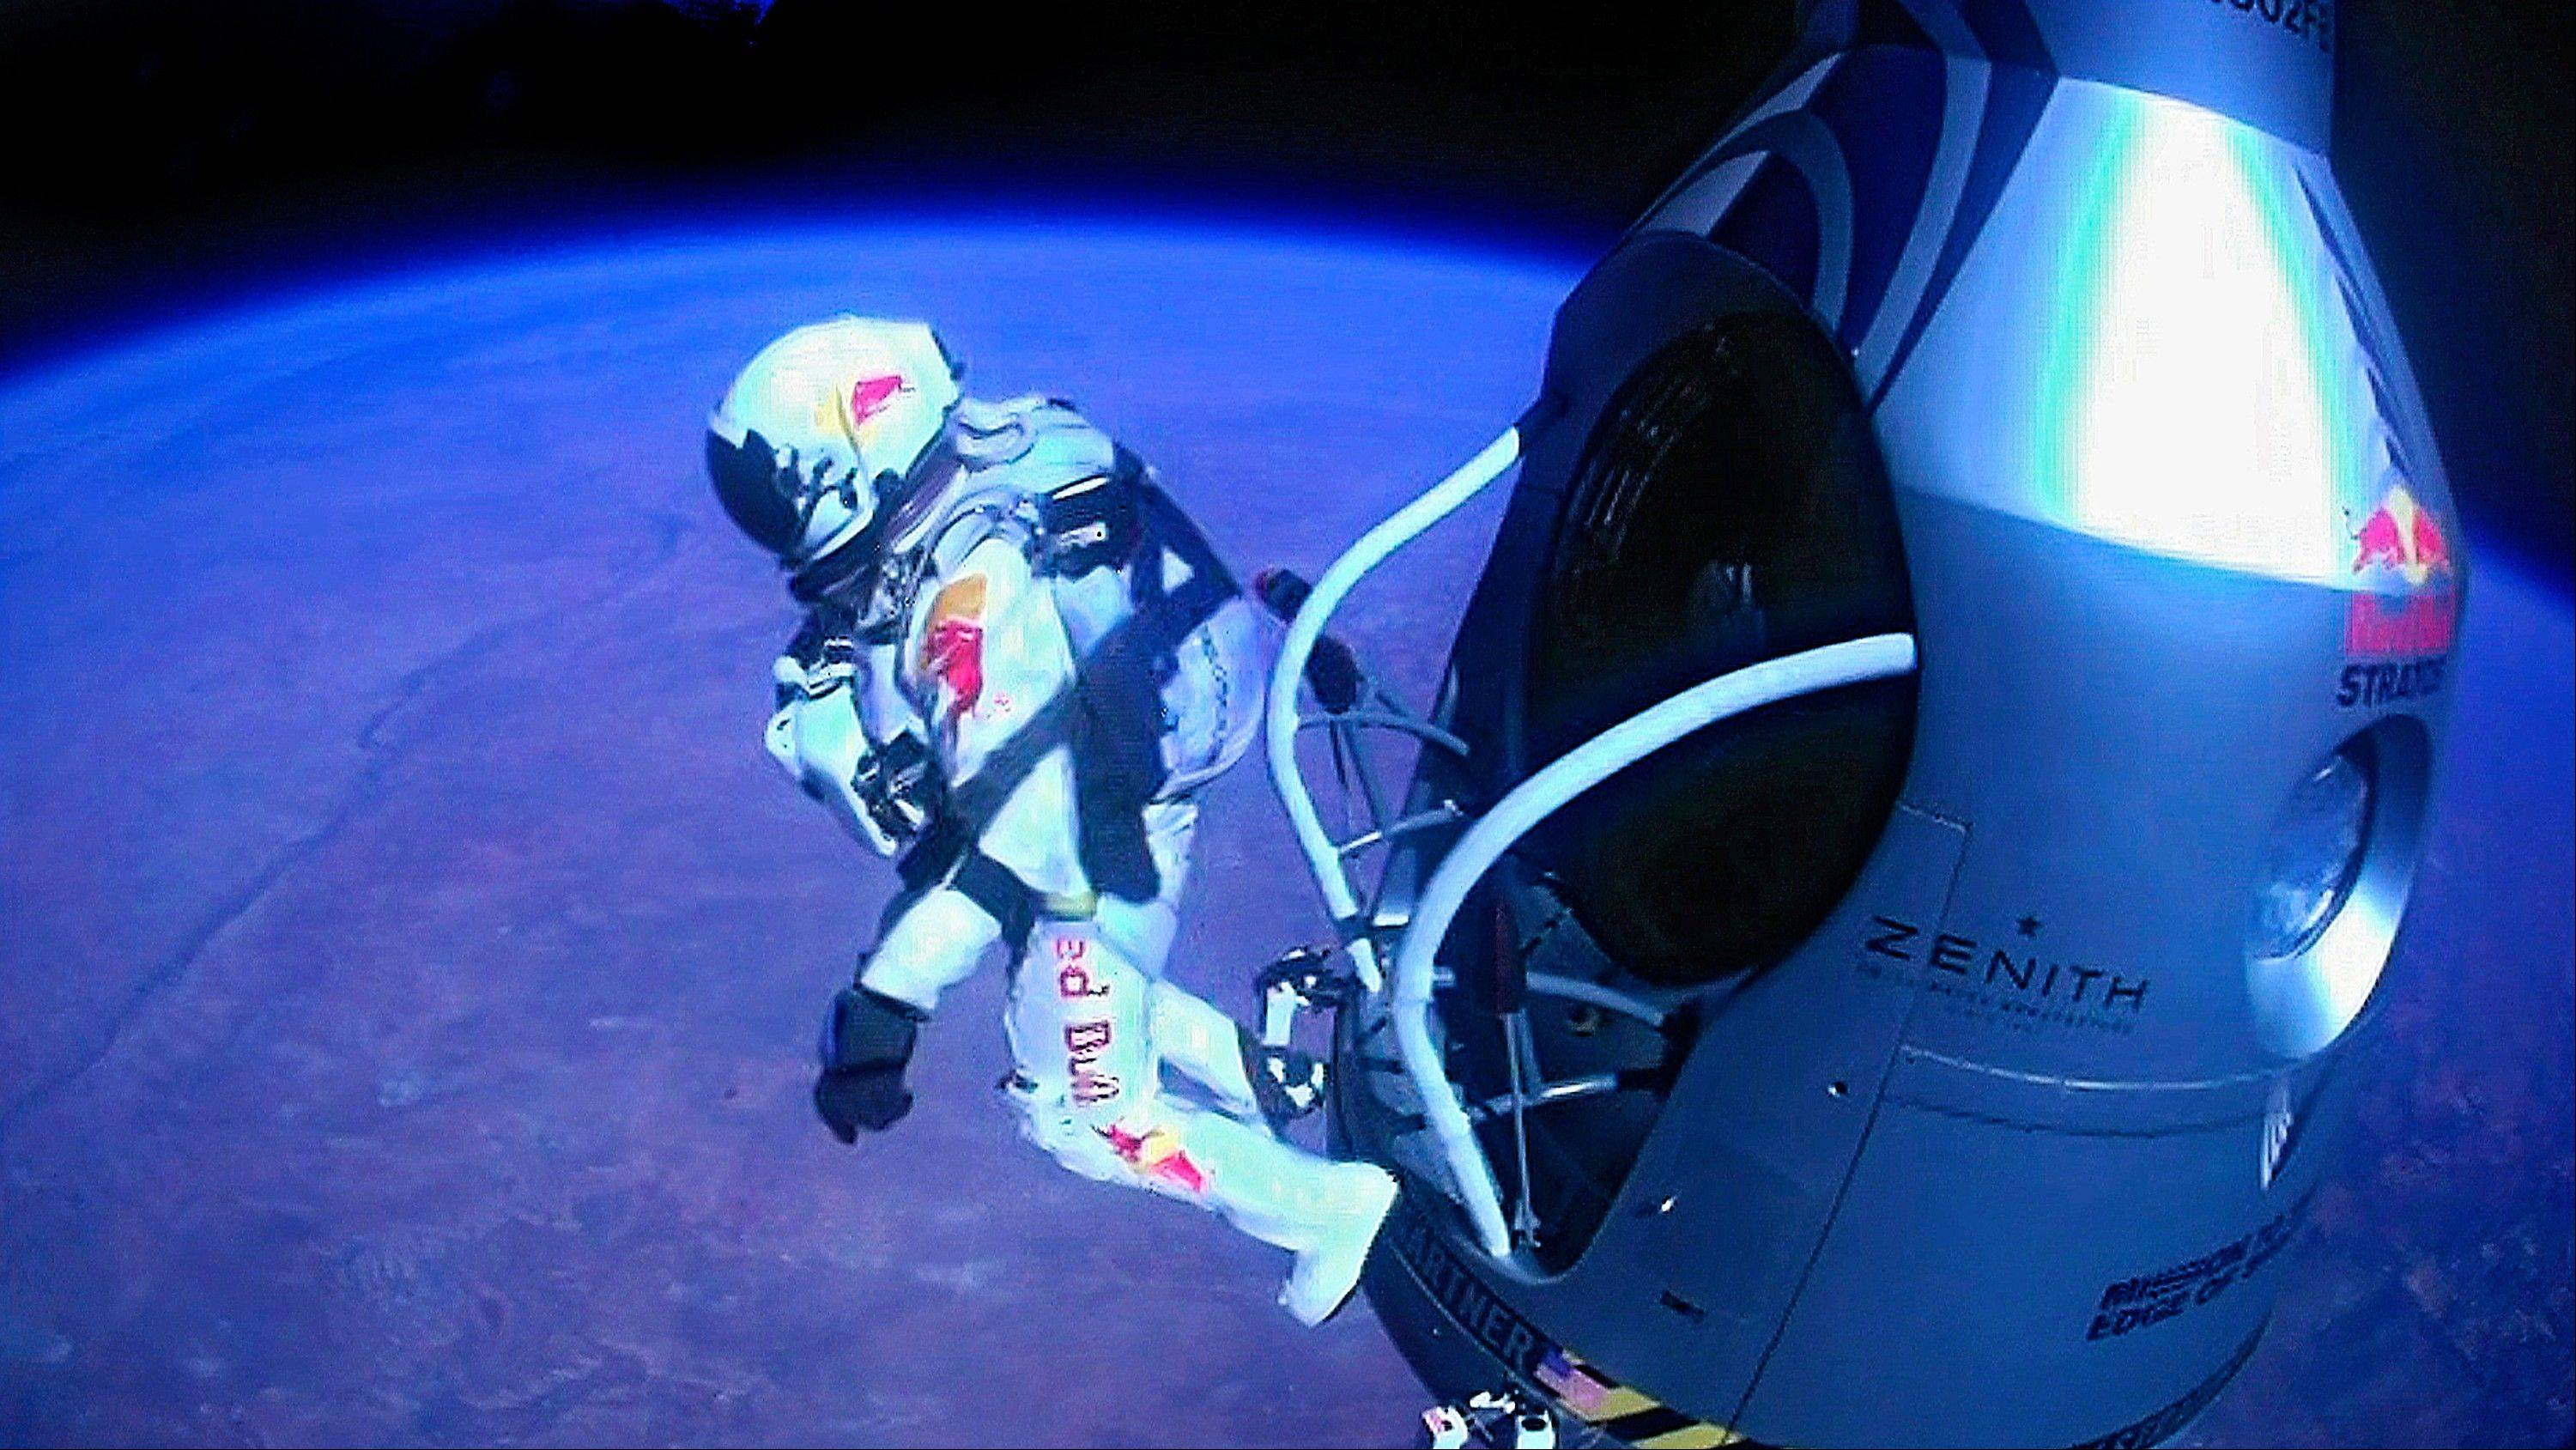 Felix Baumgartner jumps out of the capsule Oct. 14. He reached 843.6 mph. That's equivalent to Mach 1.25, or 1.25 times the speed of sound. His top speed initially was estimated last October at 834 mph, or Mach 1.24.